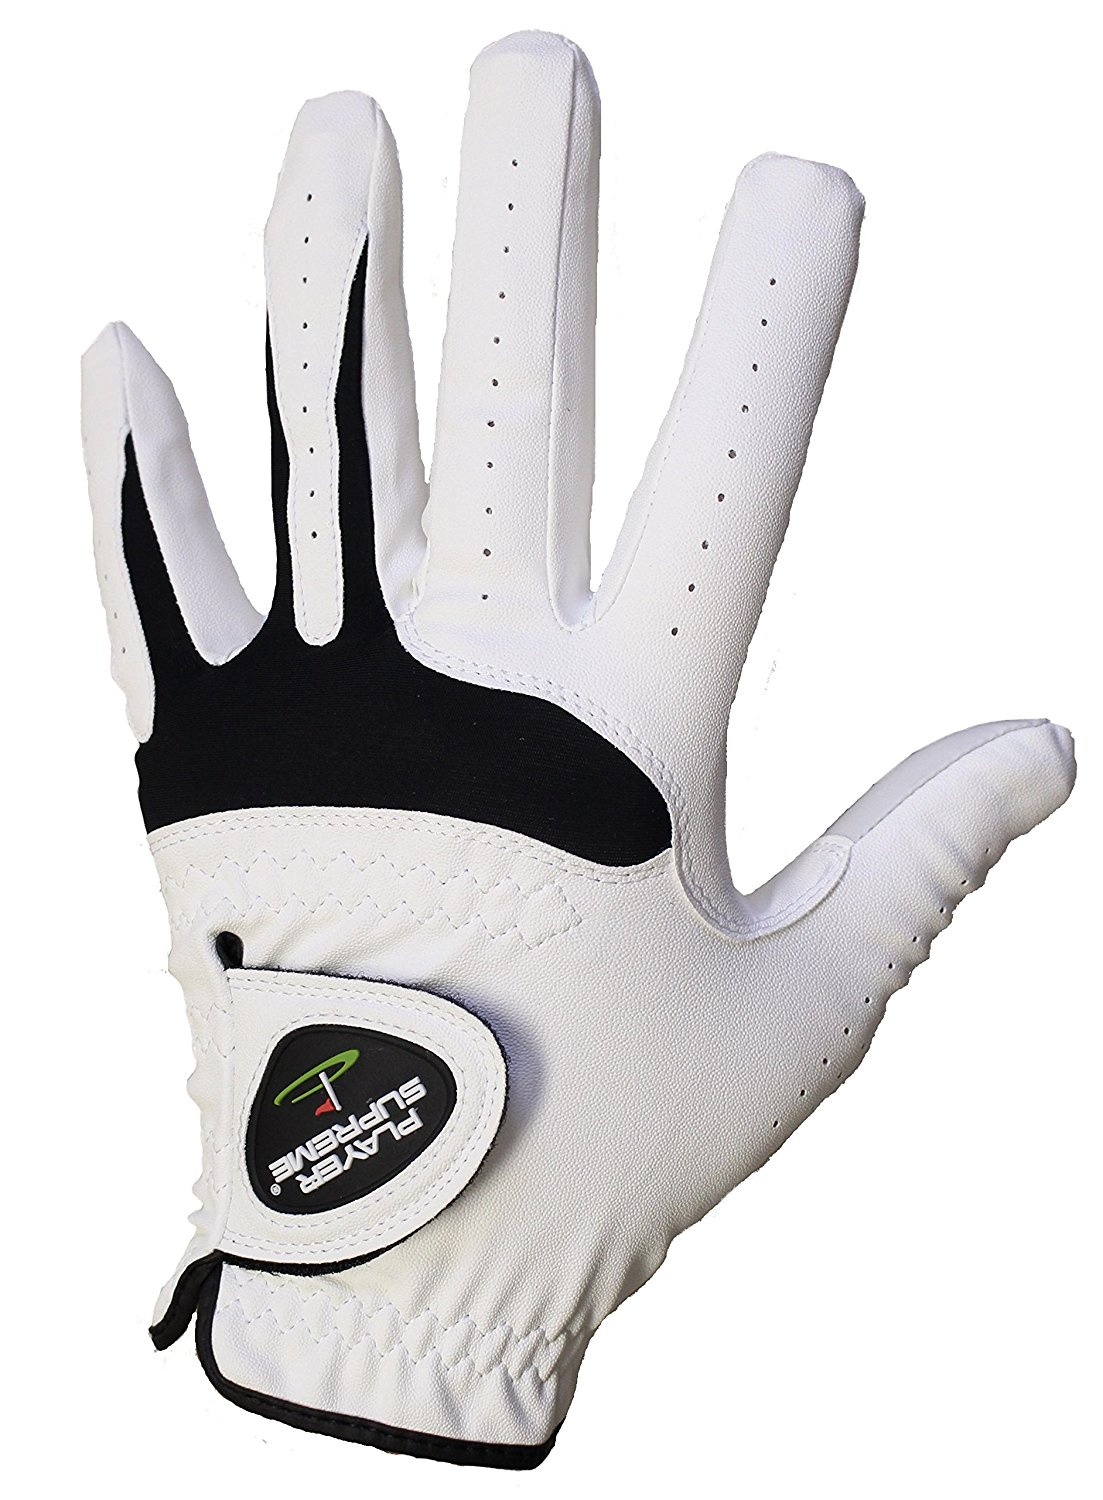 3-Pack Men's All Weather Synthetic and Cabretta Leather Golf Gloves For Right Handed Golfers (Worn on the Left Hand) Available in Various Sizes